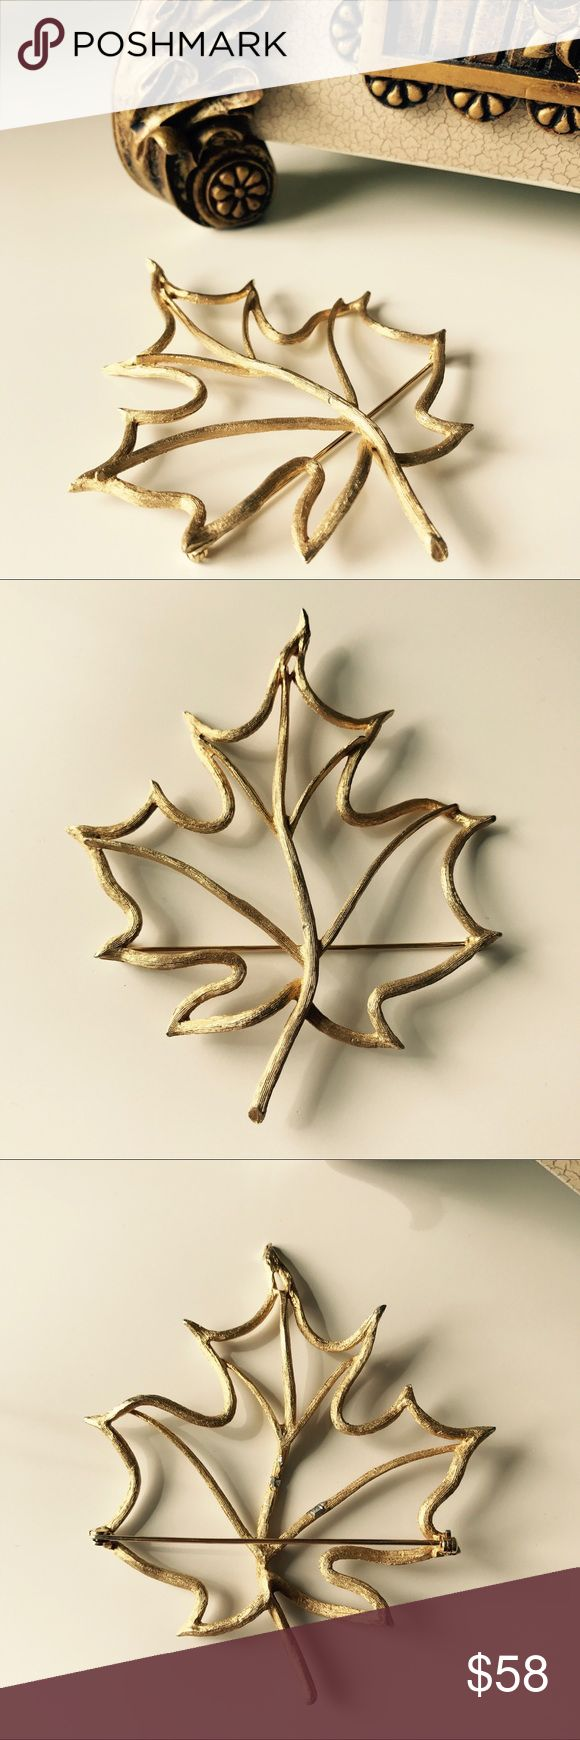 Anthropologie gold Maple leaf brooch Large and stunning brooch from Anthropologie Beautiful delicate gold framed maple 🍁 leaf brooch. Delicate compliment to any outfit, hat, purse, belt etc. Anthropologie Jewelry Brooches